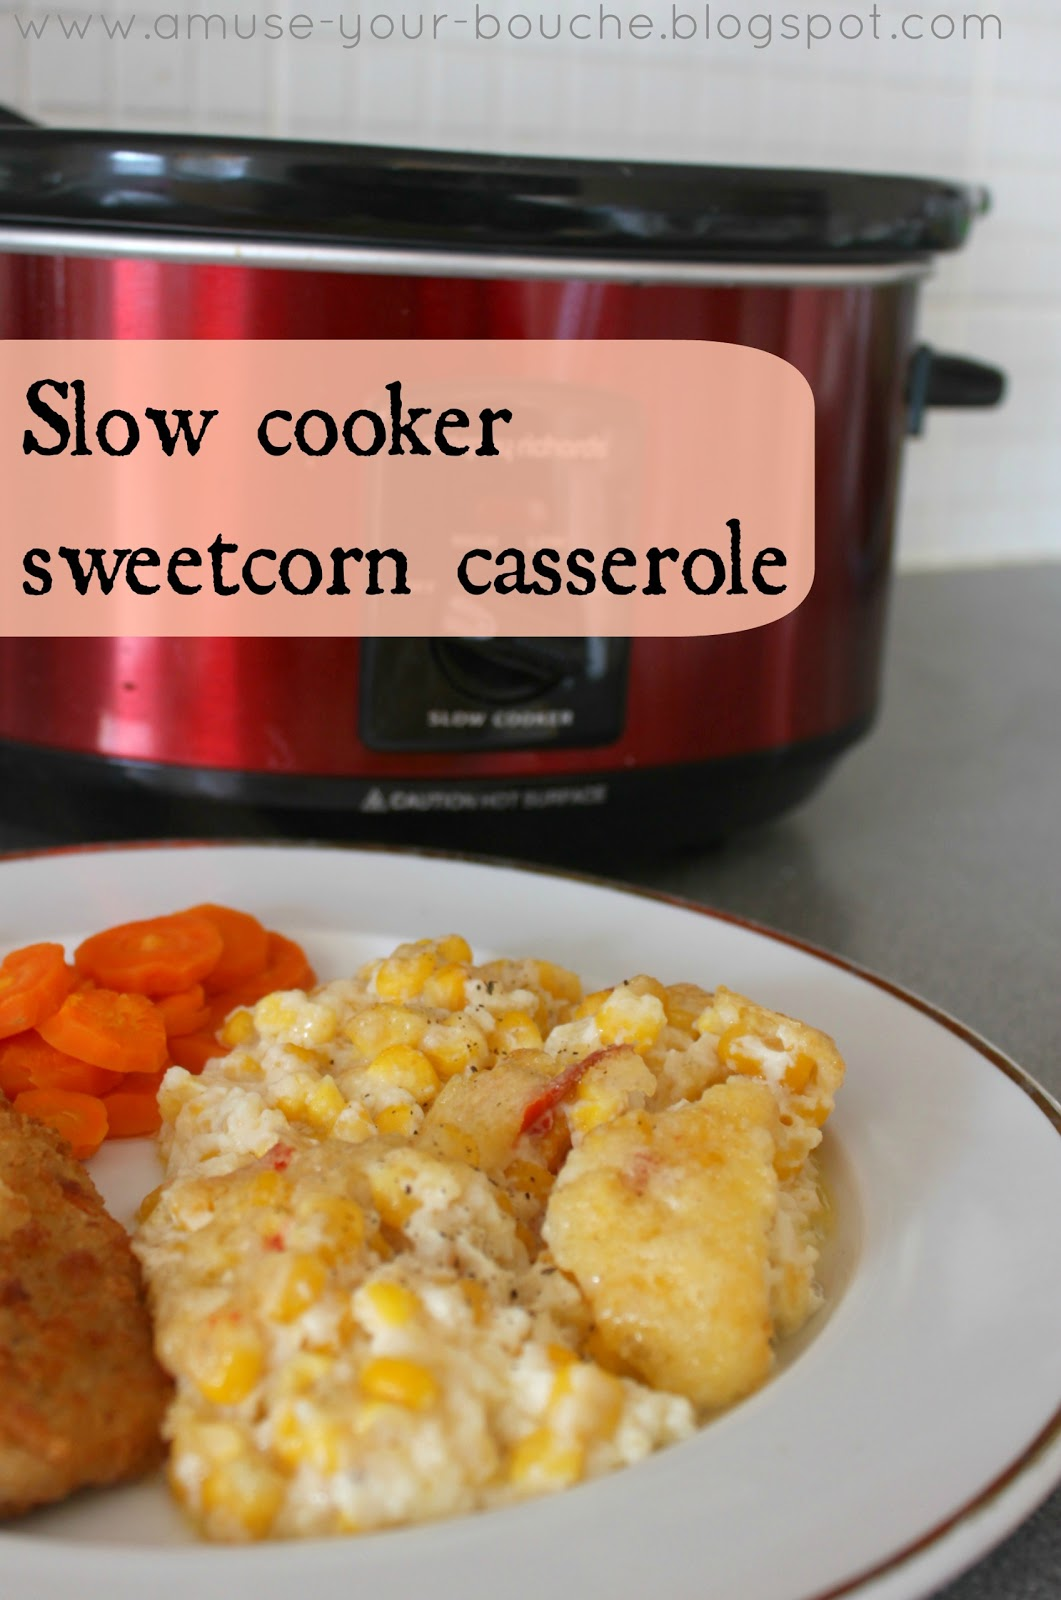 Slow cooker sweetcorn casserole - Amuse Your Bouche